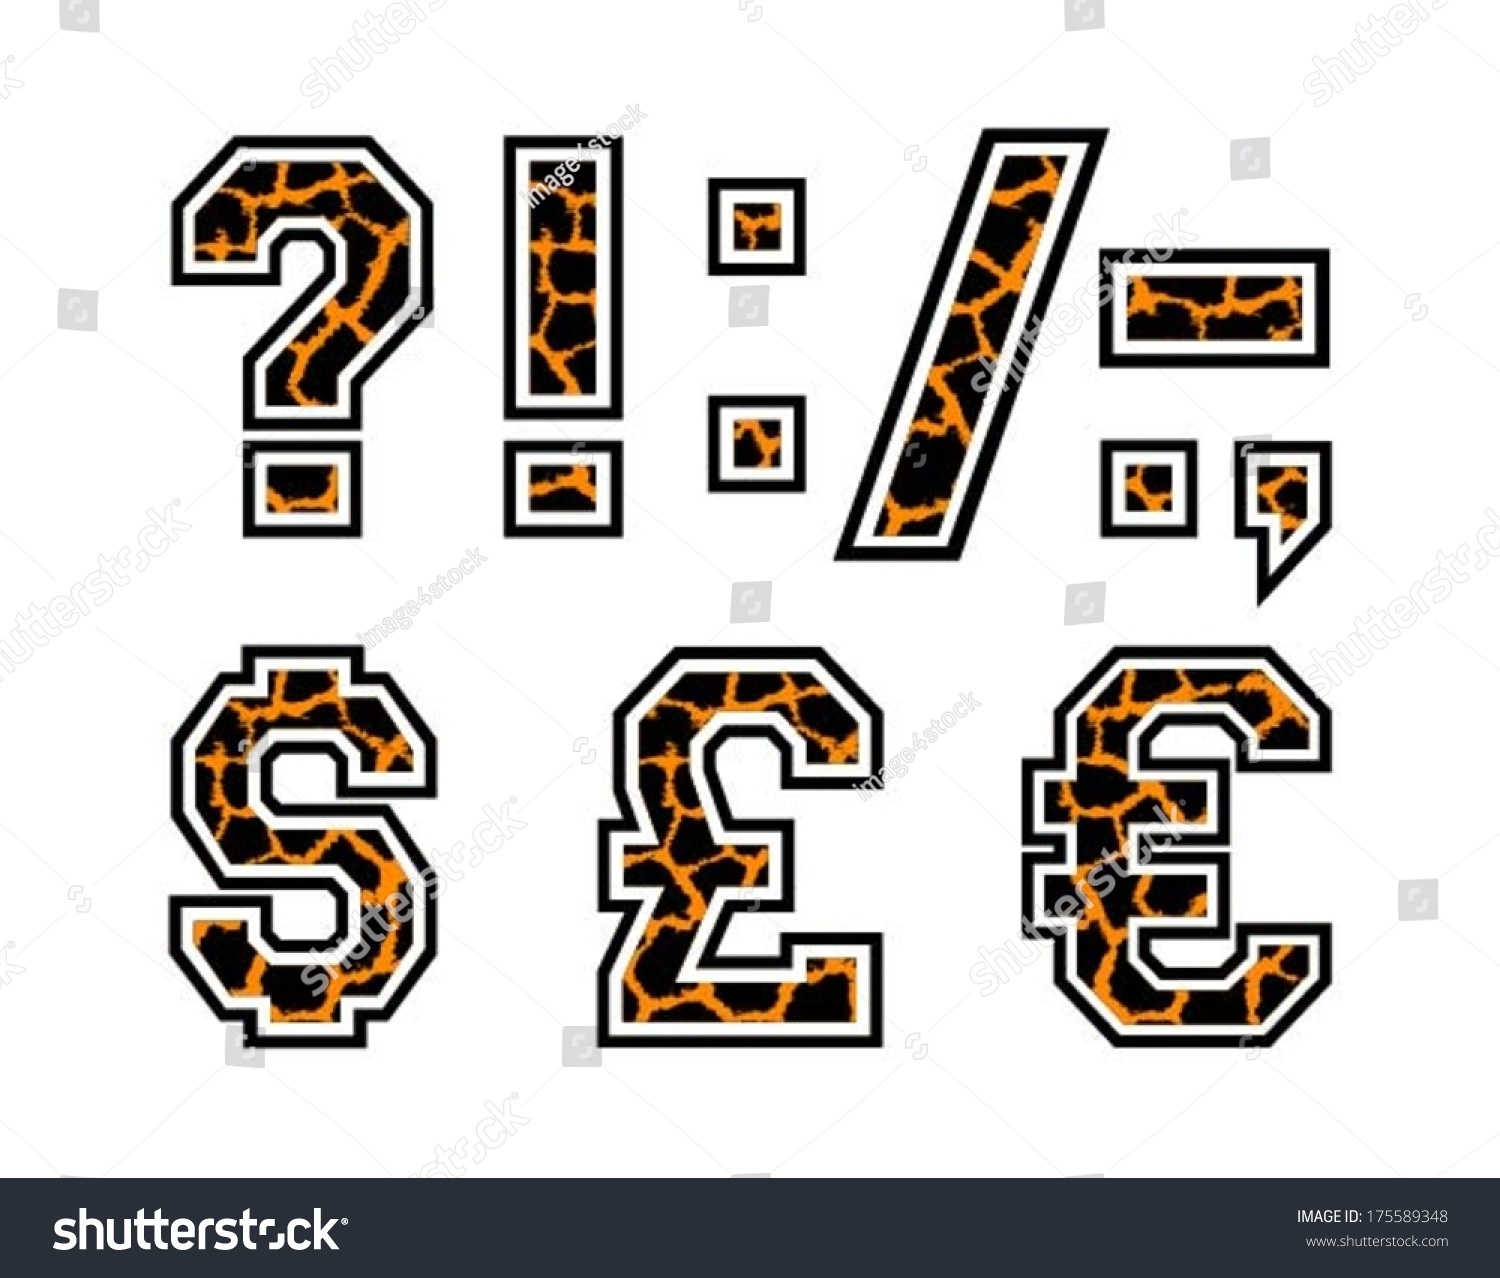 Text Question Mark Coma Dot Currency Stock Vector 175589348